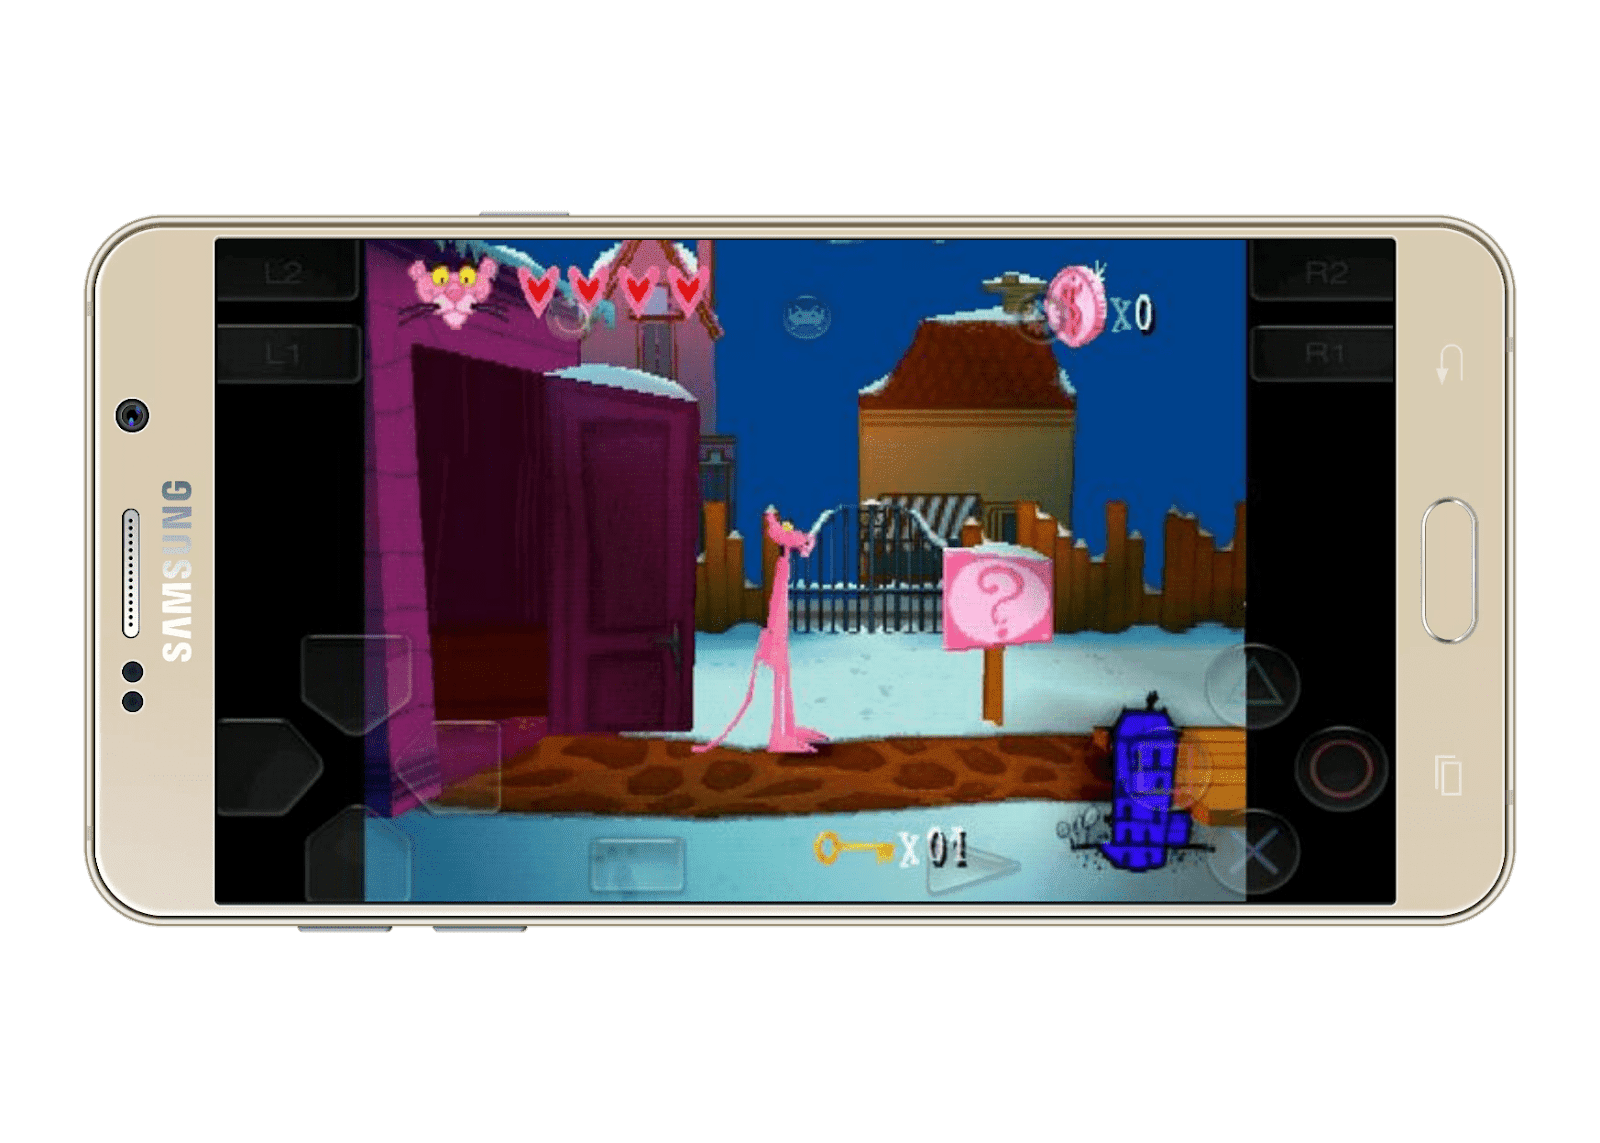 Download the original Pink Panther game for Android and PC from MediaFire